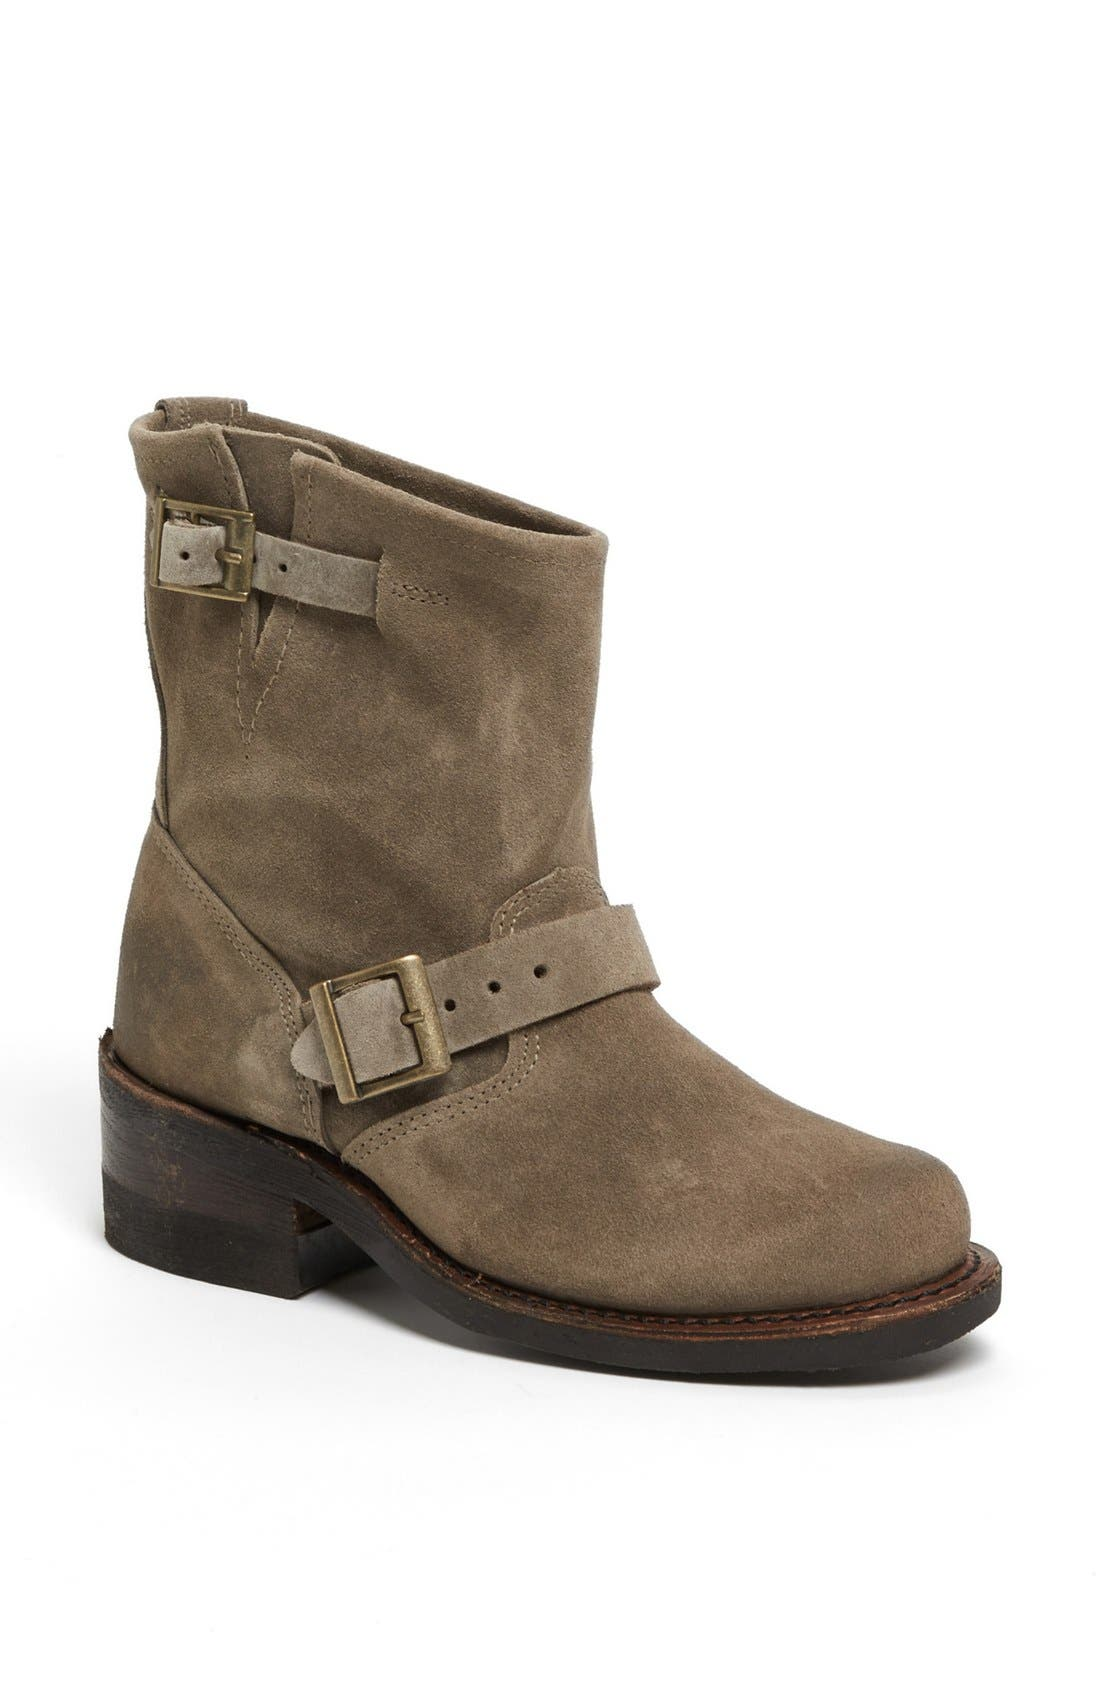 Main Image - Vintage Shoe Company 'Sophie' Suede Boot